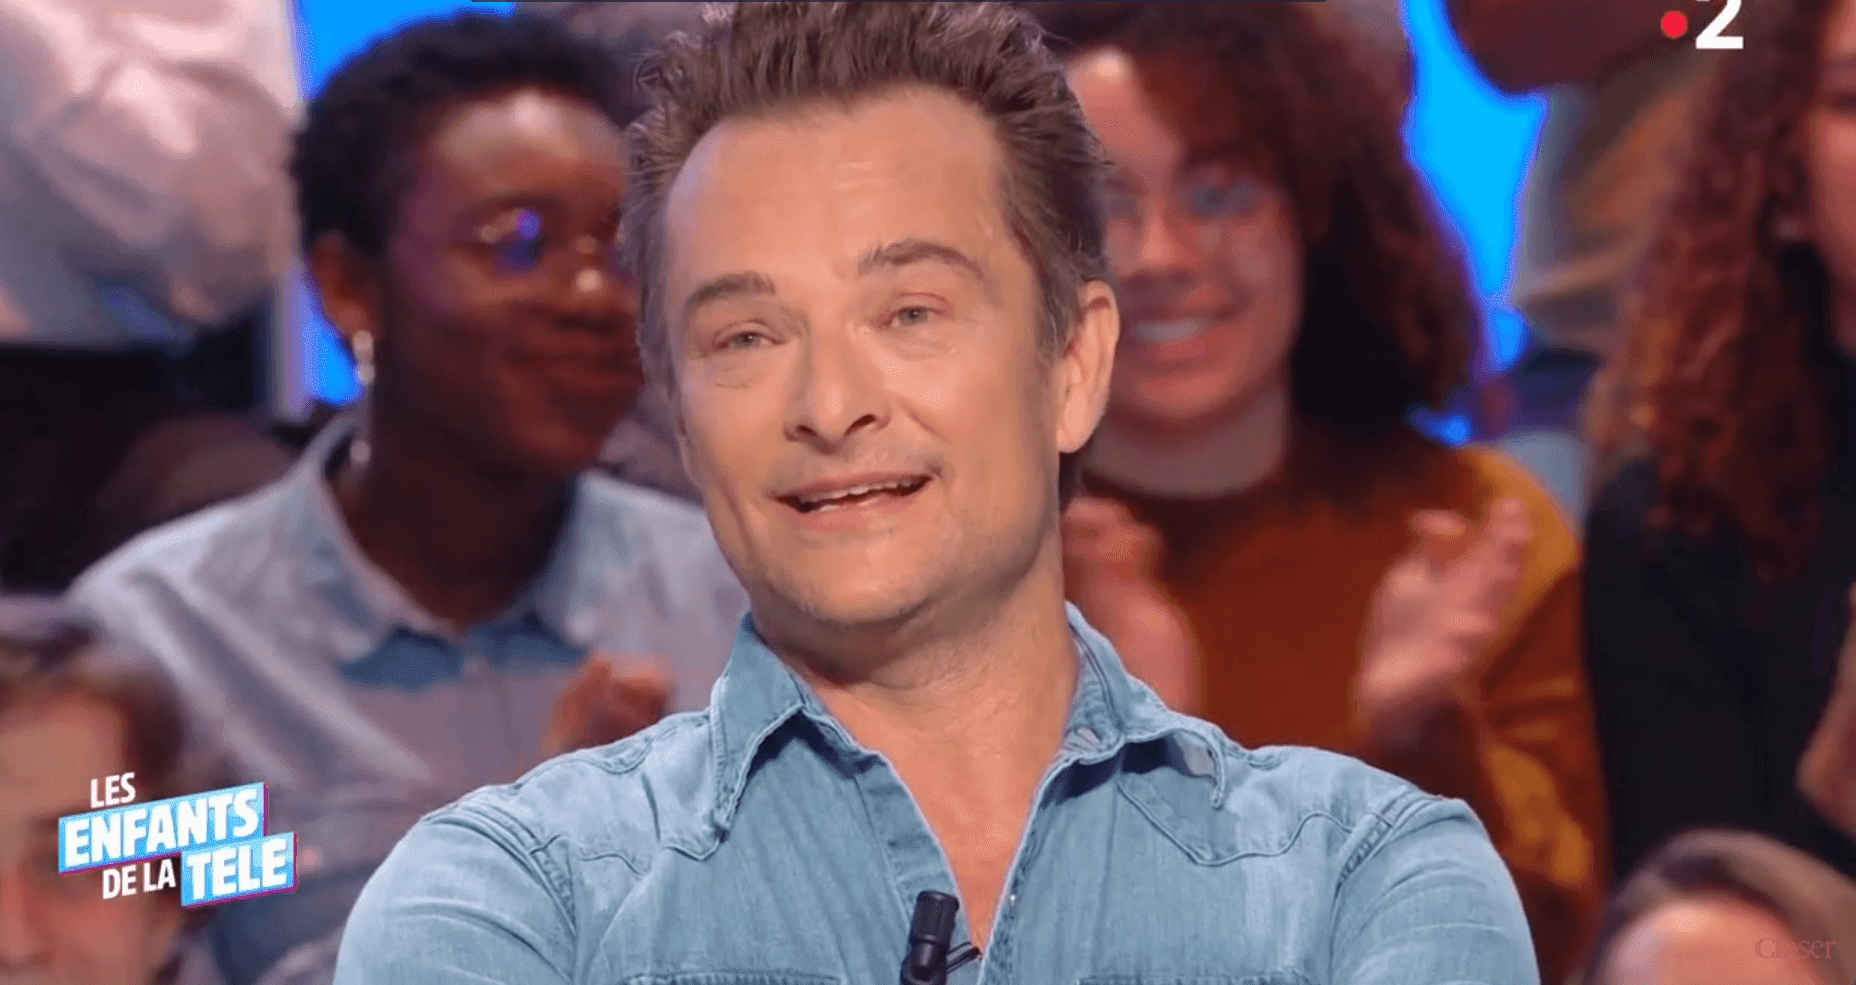 Source : Daily Motion/Closer - David Hallyday intervenant dans Les enfants de la télé